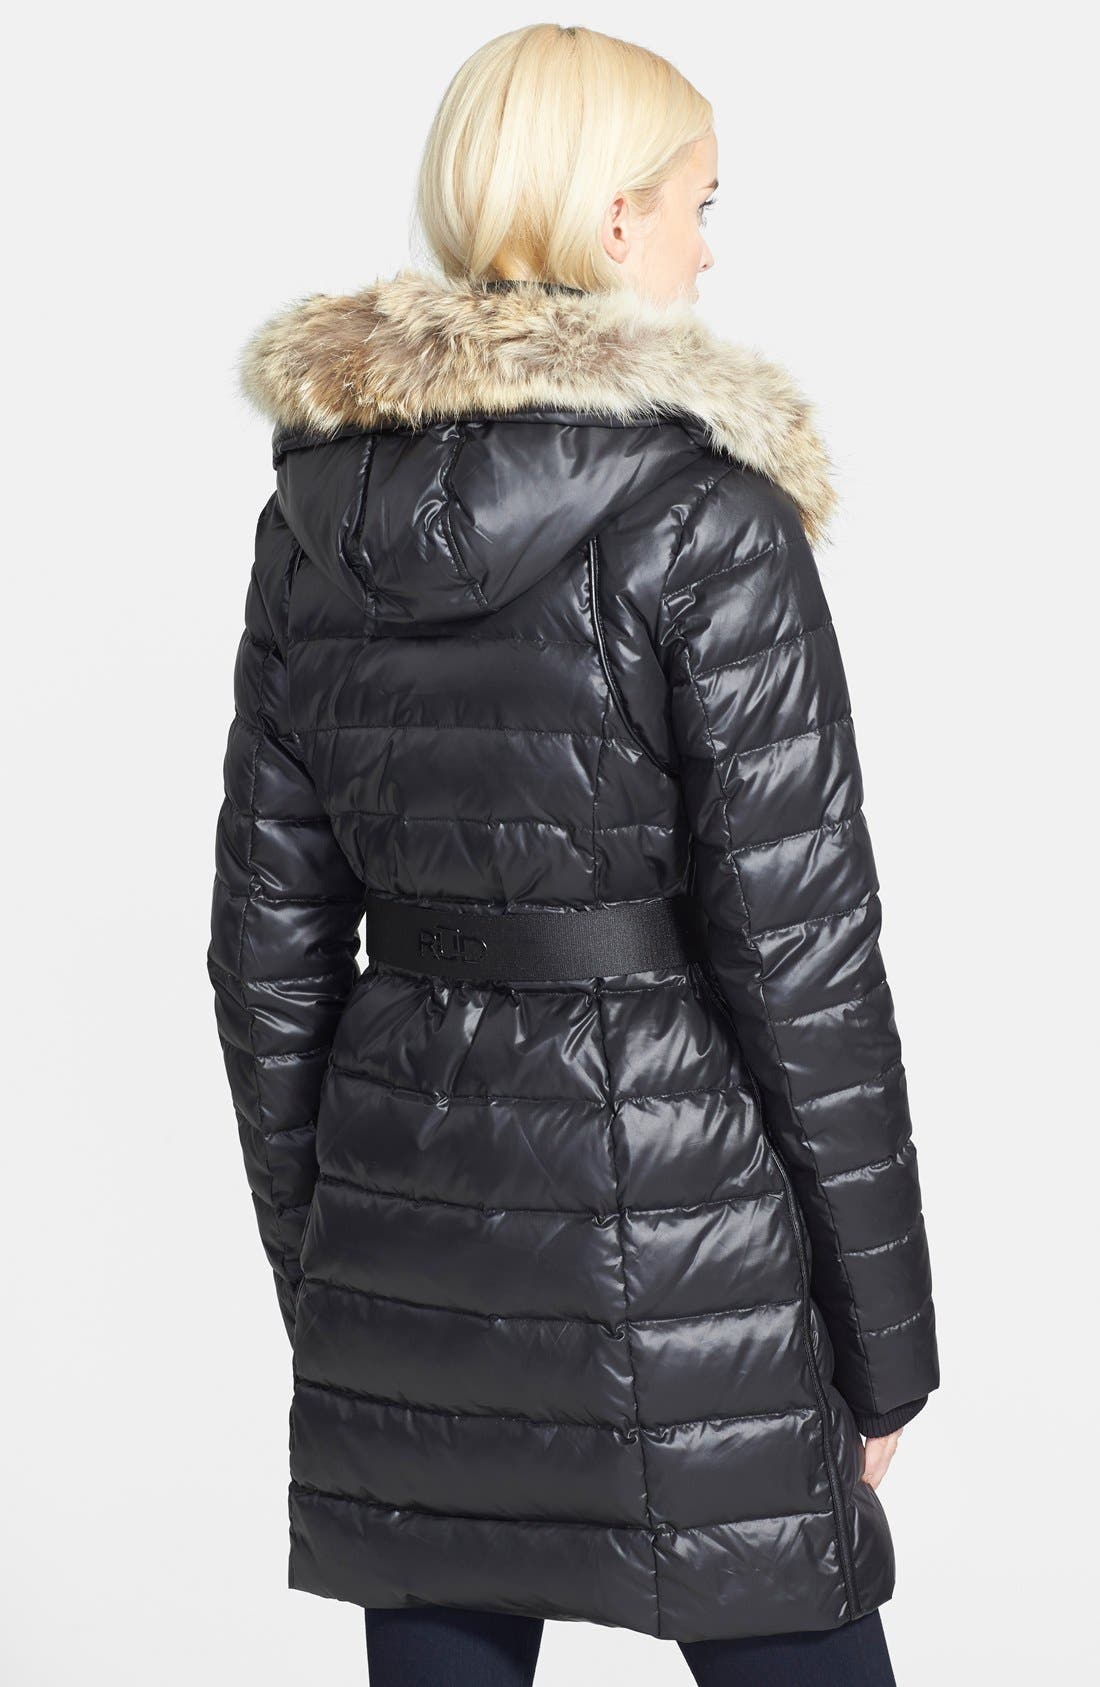 'Joannie' Belted Puffer Coat with Genuine Coyote Fur Trimmed Hood,                             Alternate thumbnail 3, color,                             001